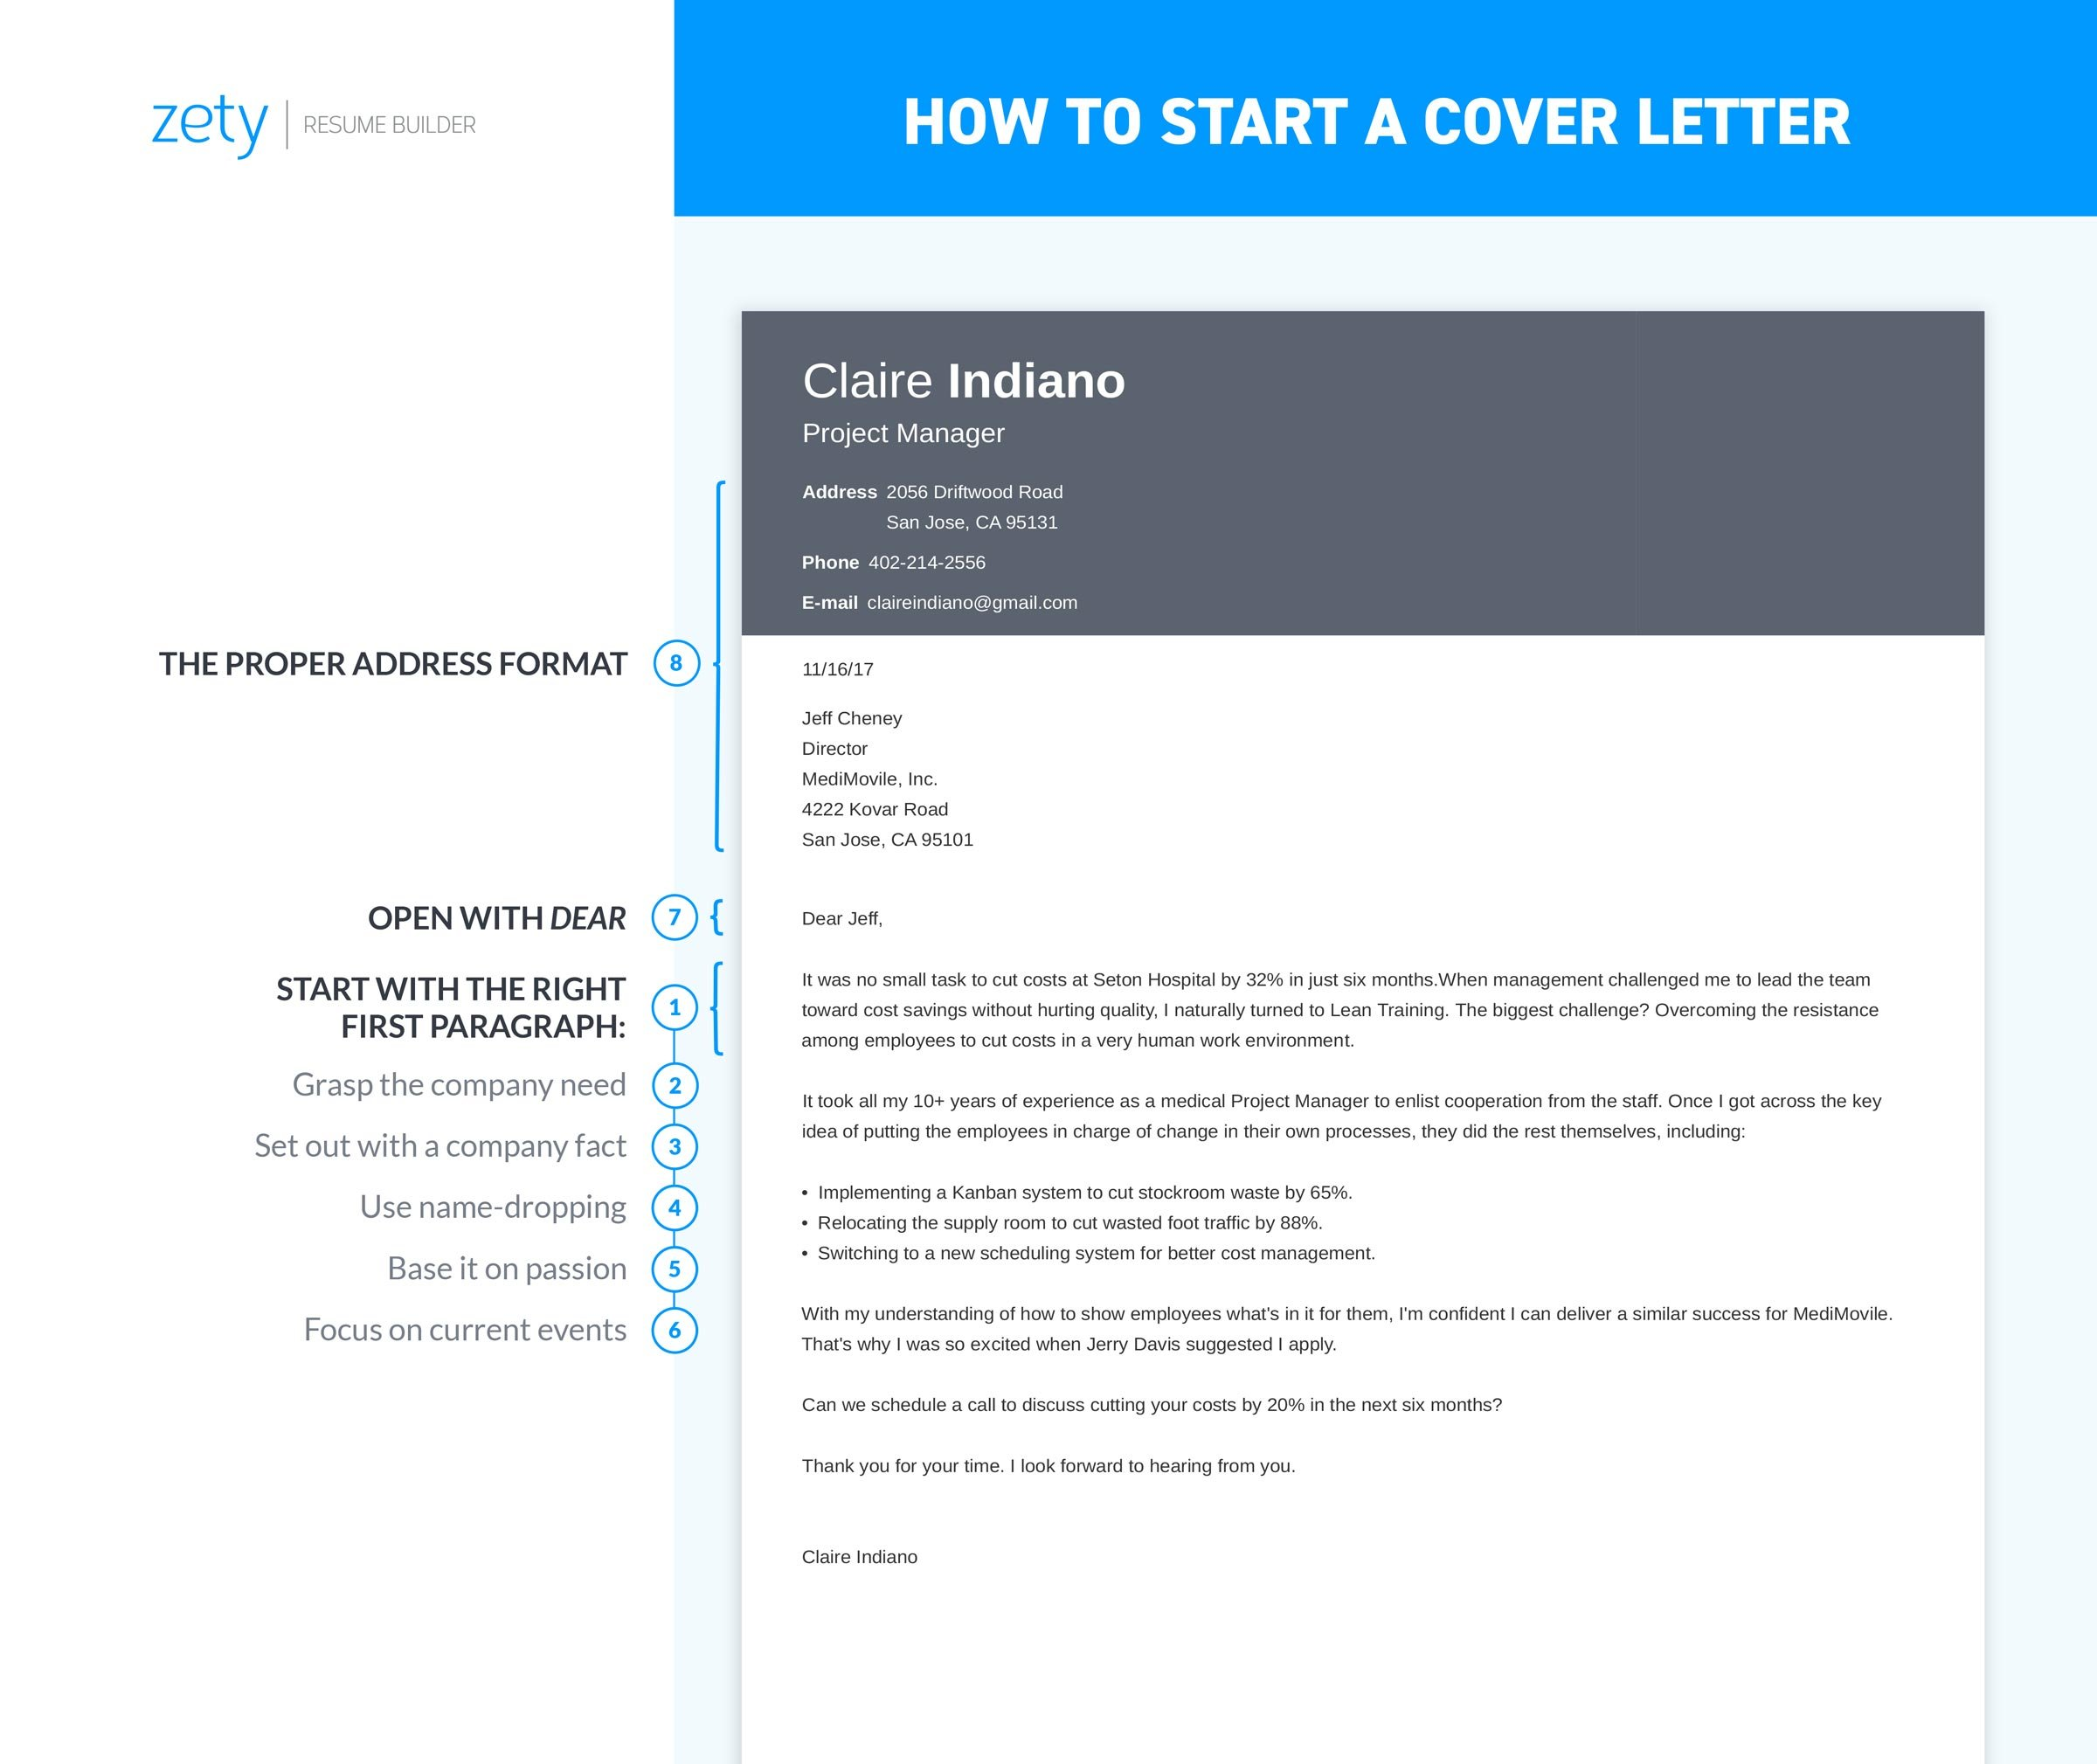 How to start a cover letter sample complete guide 20 for Starting off a cover letter